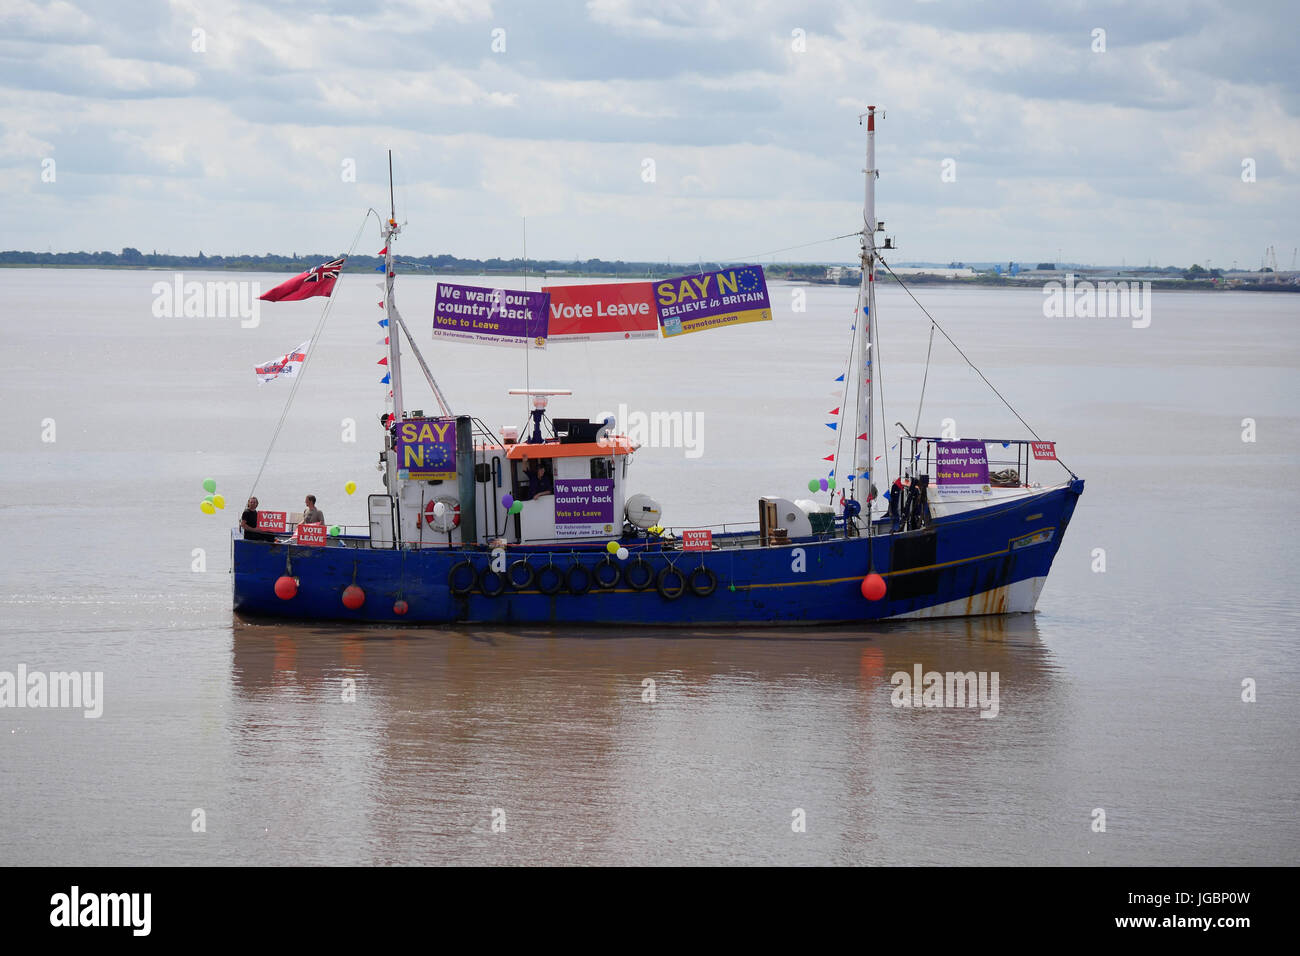 A fishing boat supporting leave the European Union referendum campaign. Part of the protest flotilla in The river Stock Photo